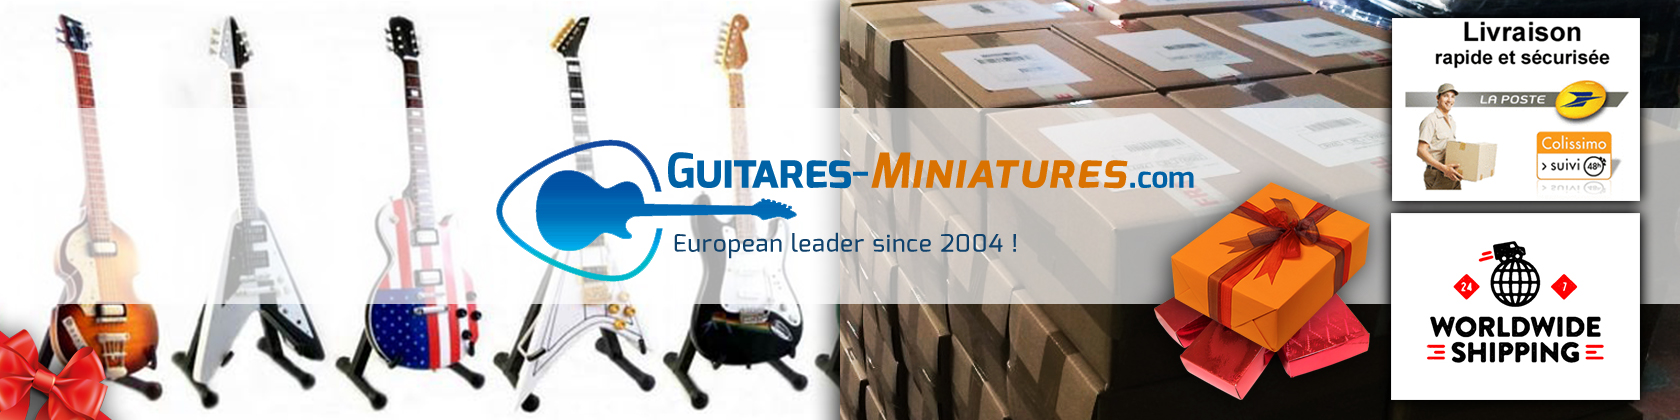 Collectible Rock Star Miniature Musical Instruments Online Store